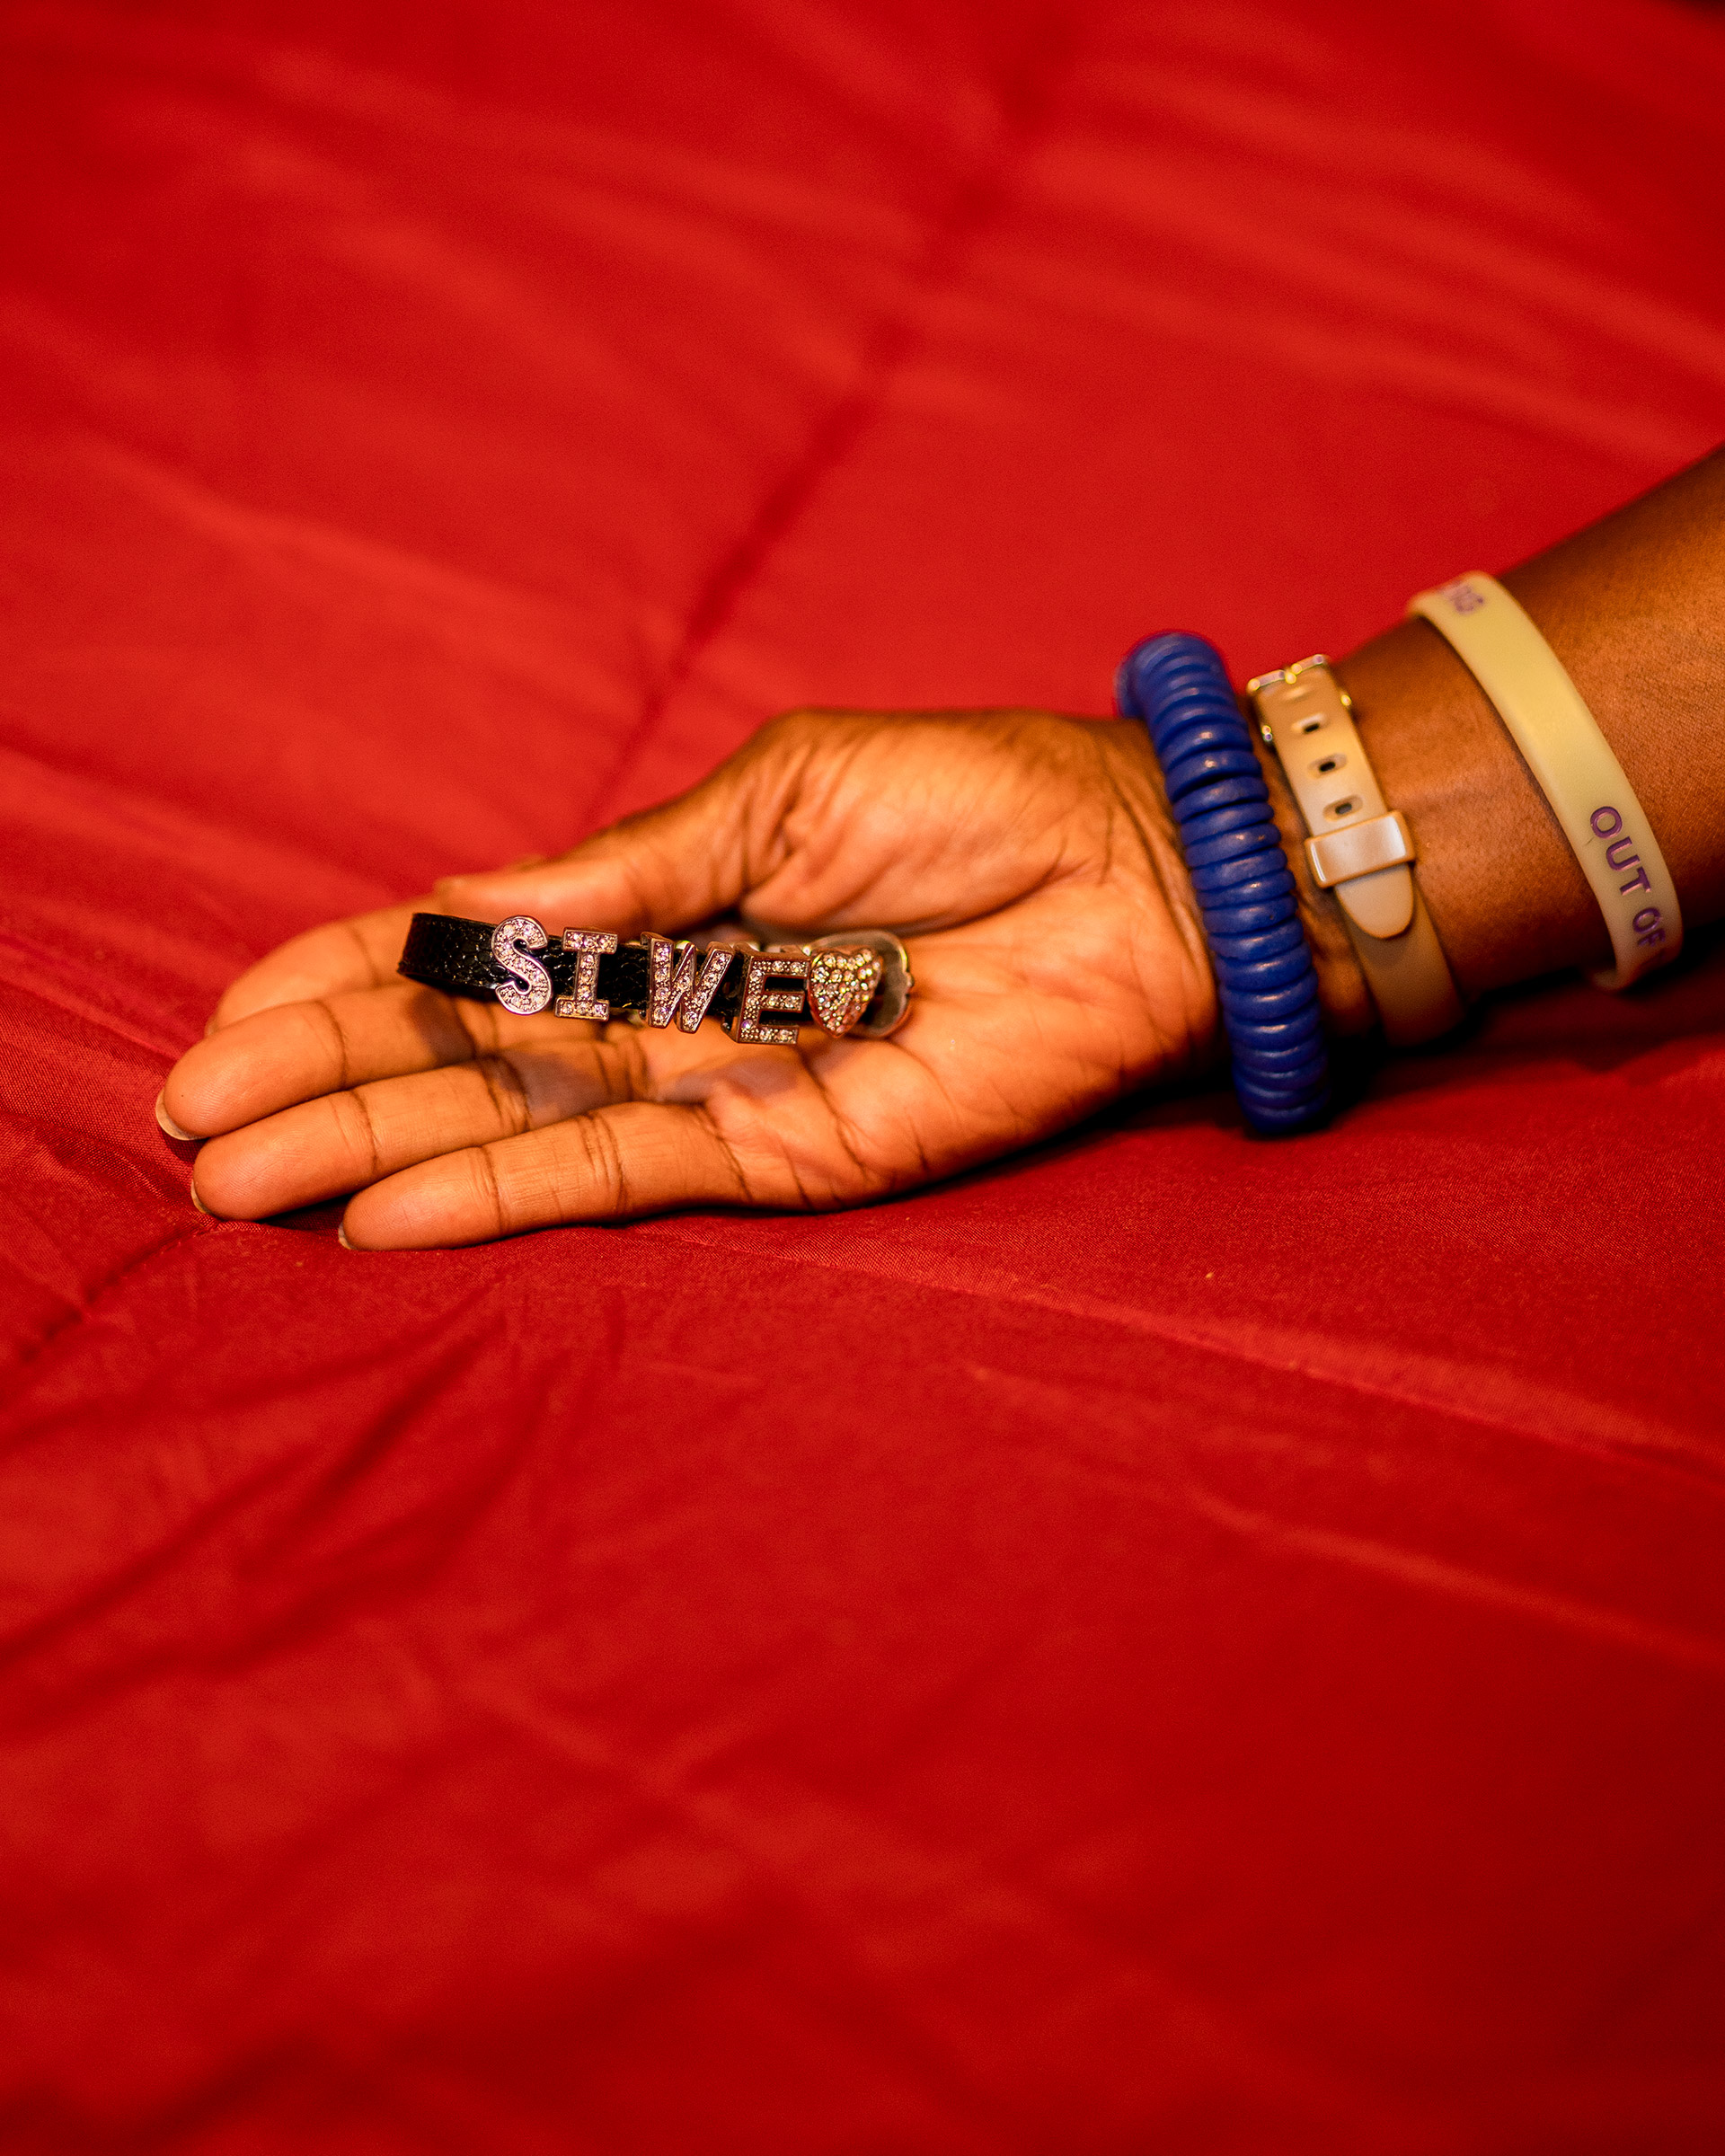 """Dionne Monsanto holds a bracelet that Siwe made. """"With a name like Busisiwe Ayo Monsanto...she could never buy anything pre-made with her name. So it was a big deal that there was a place that she could do that,"""" Monsanto says."""